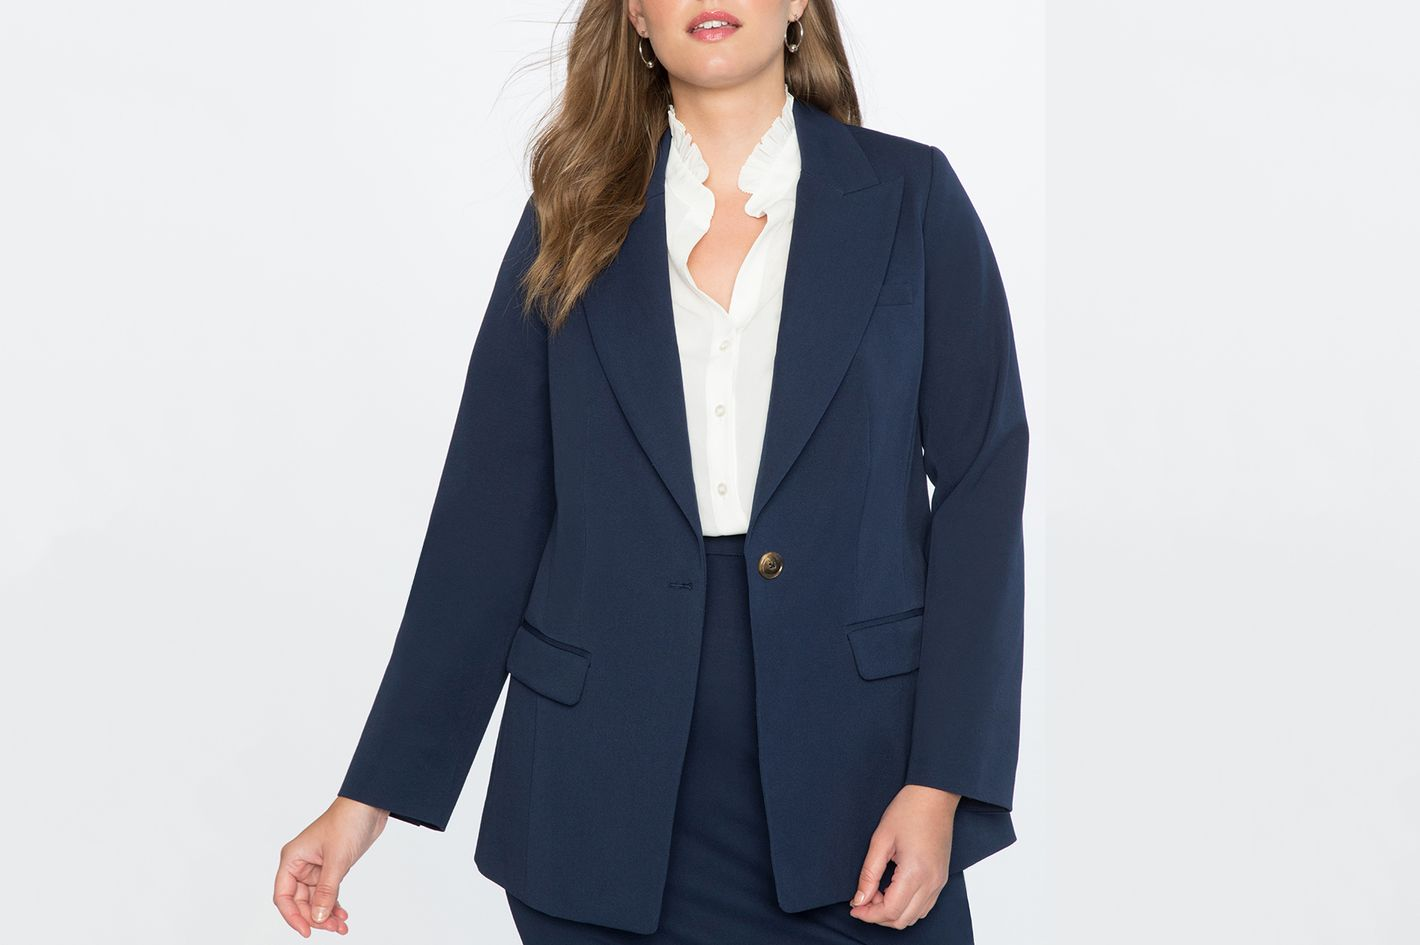 ef3688d4ed1 The 15 Best Work Blazers for the Professional Woman, 2018